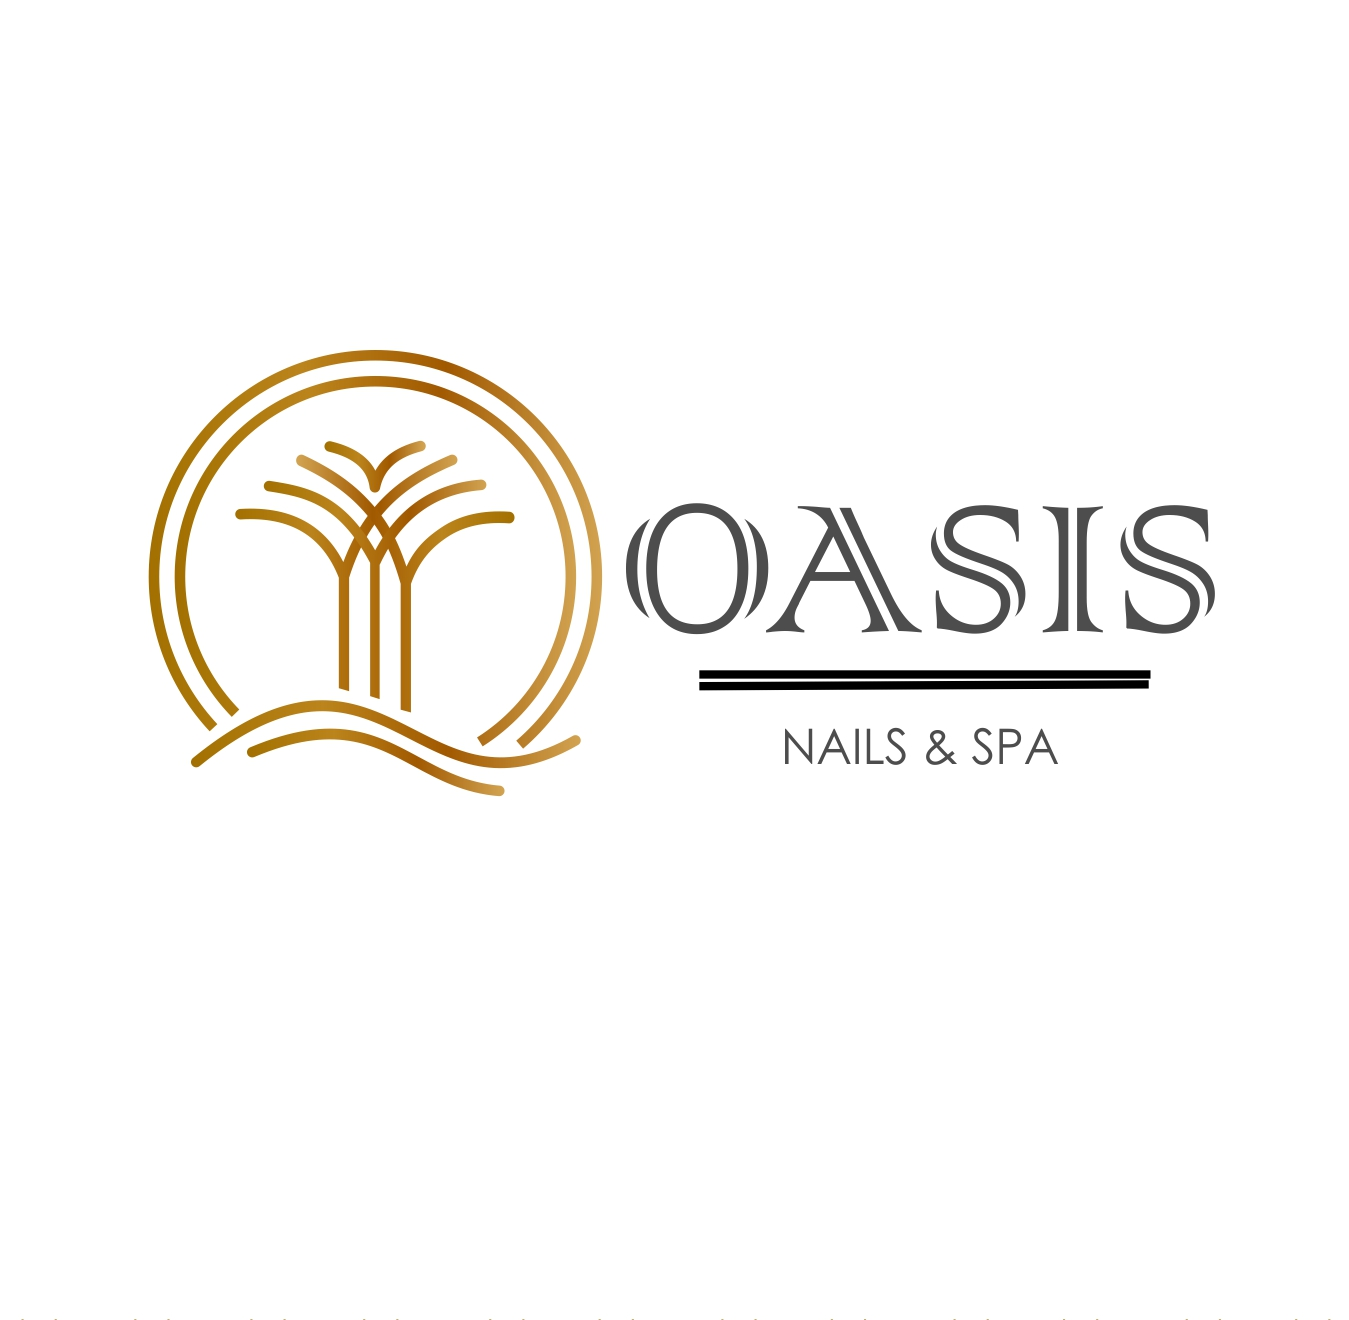 Oasis Nails & Spa Logo